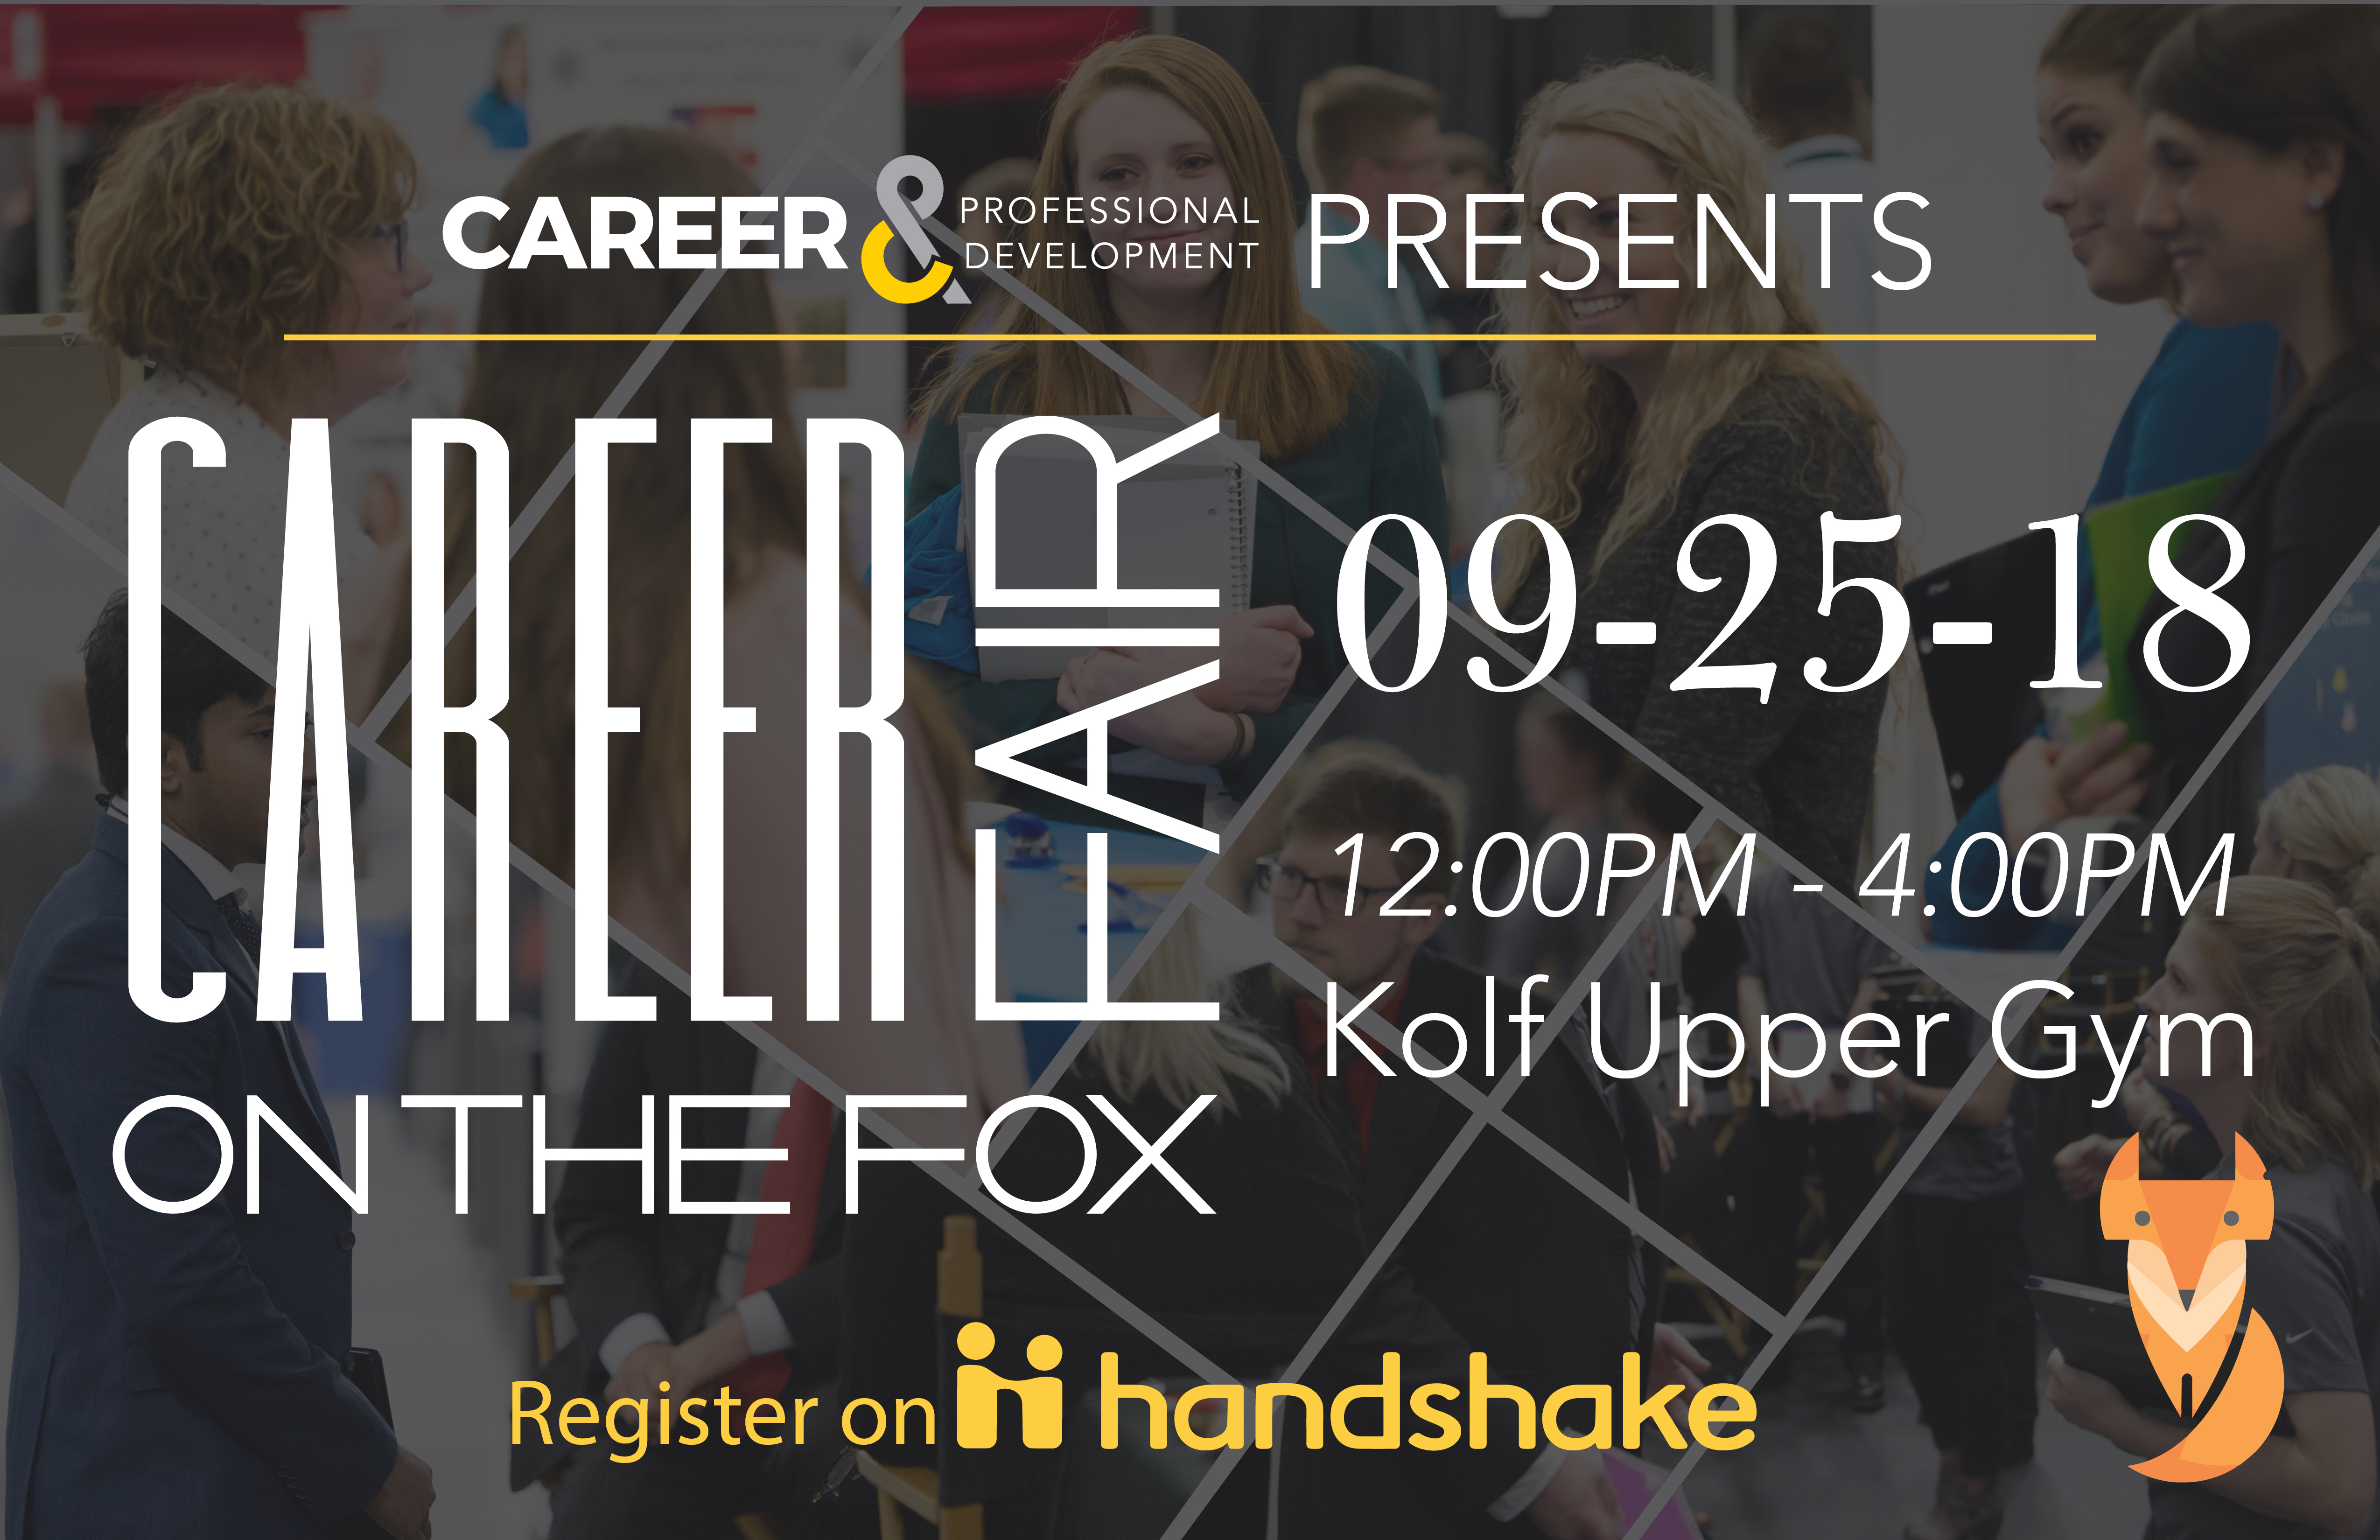 Career Fair on the Fox - UW Oshkosh Today University of